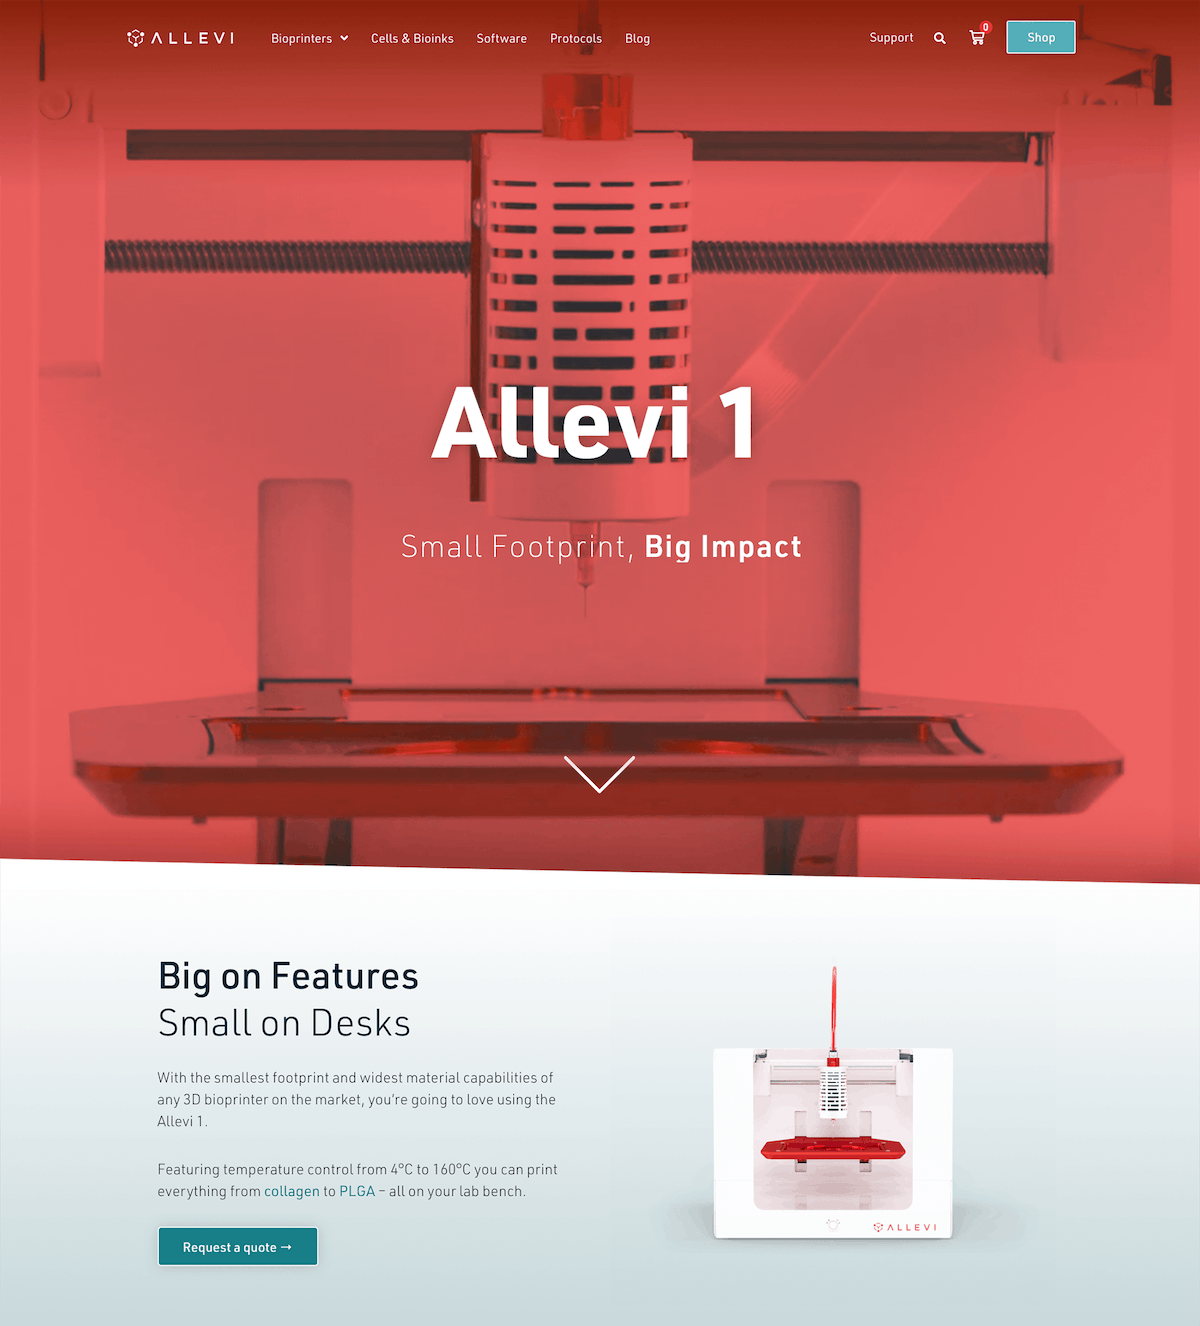 Allevi 1 product page